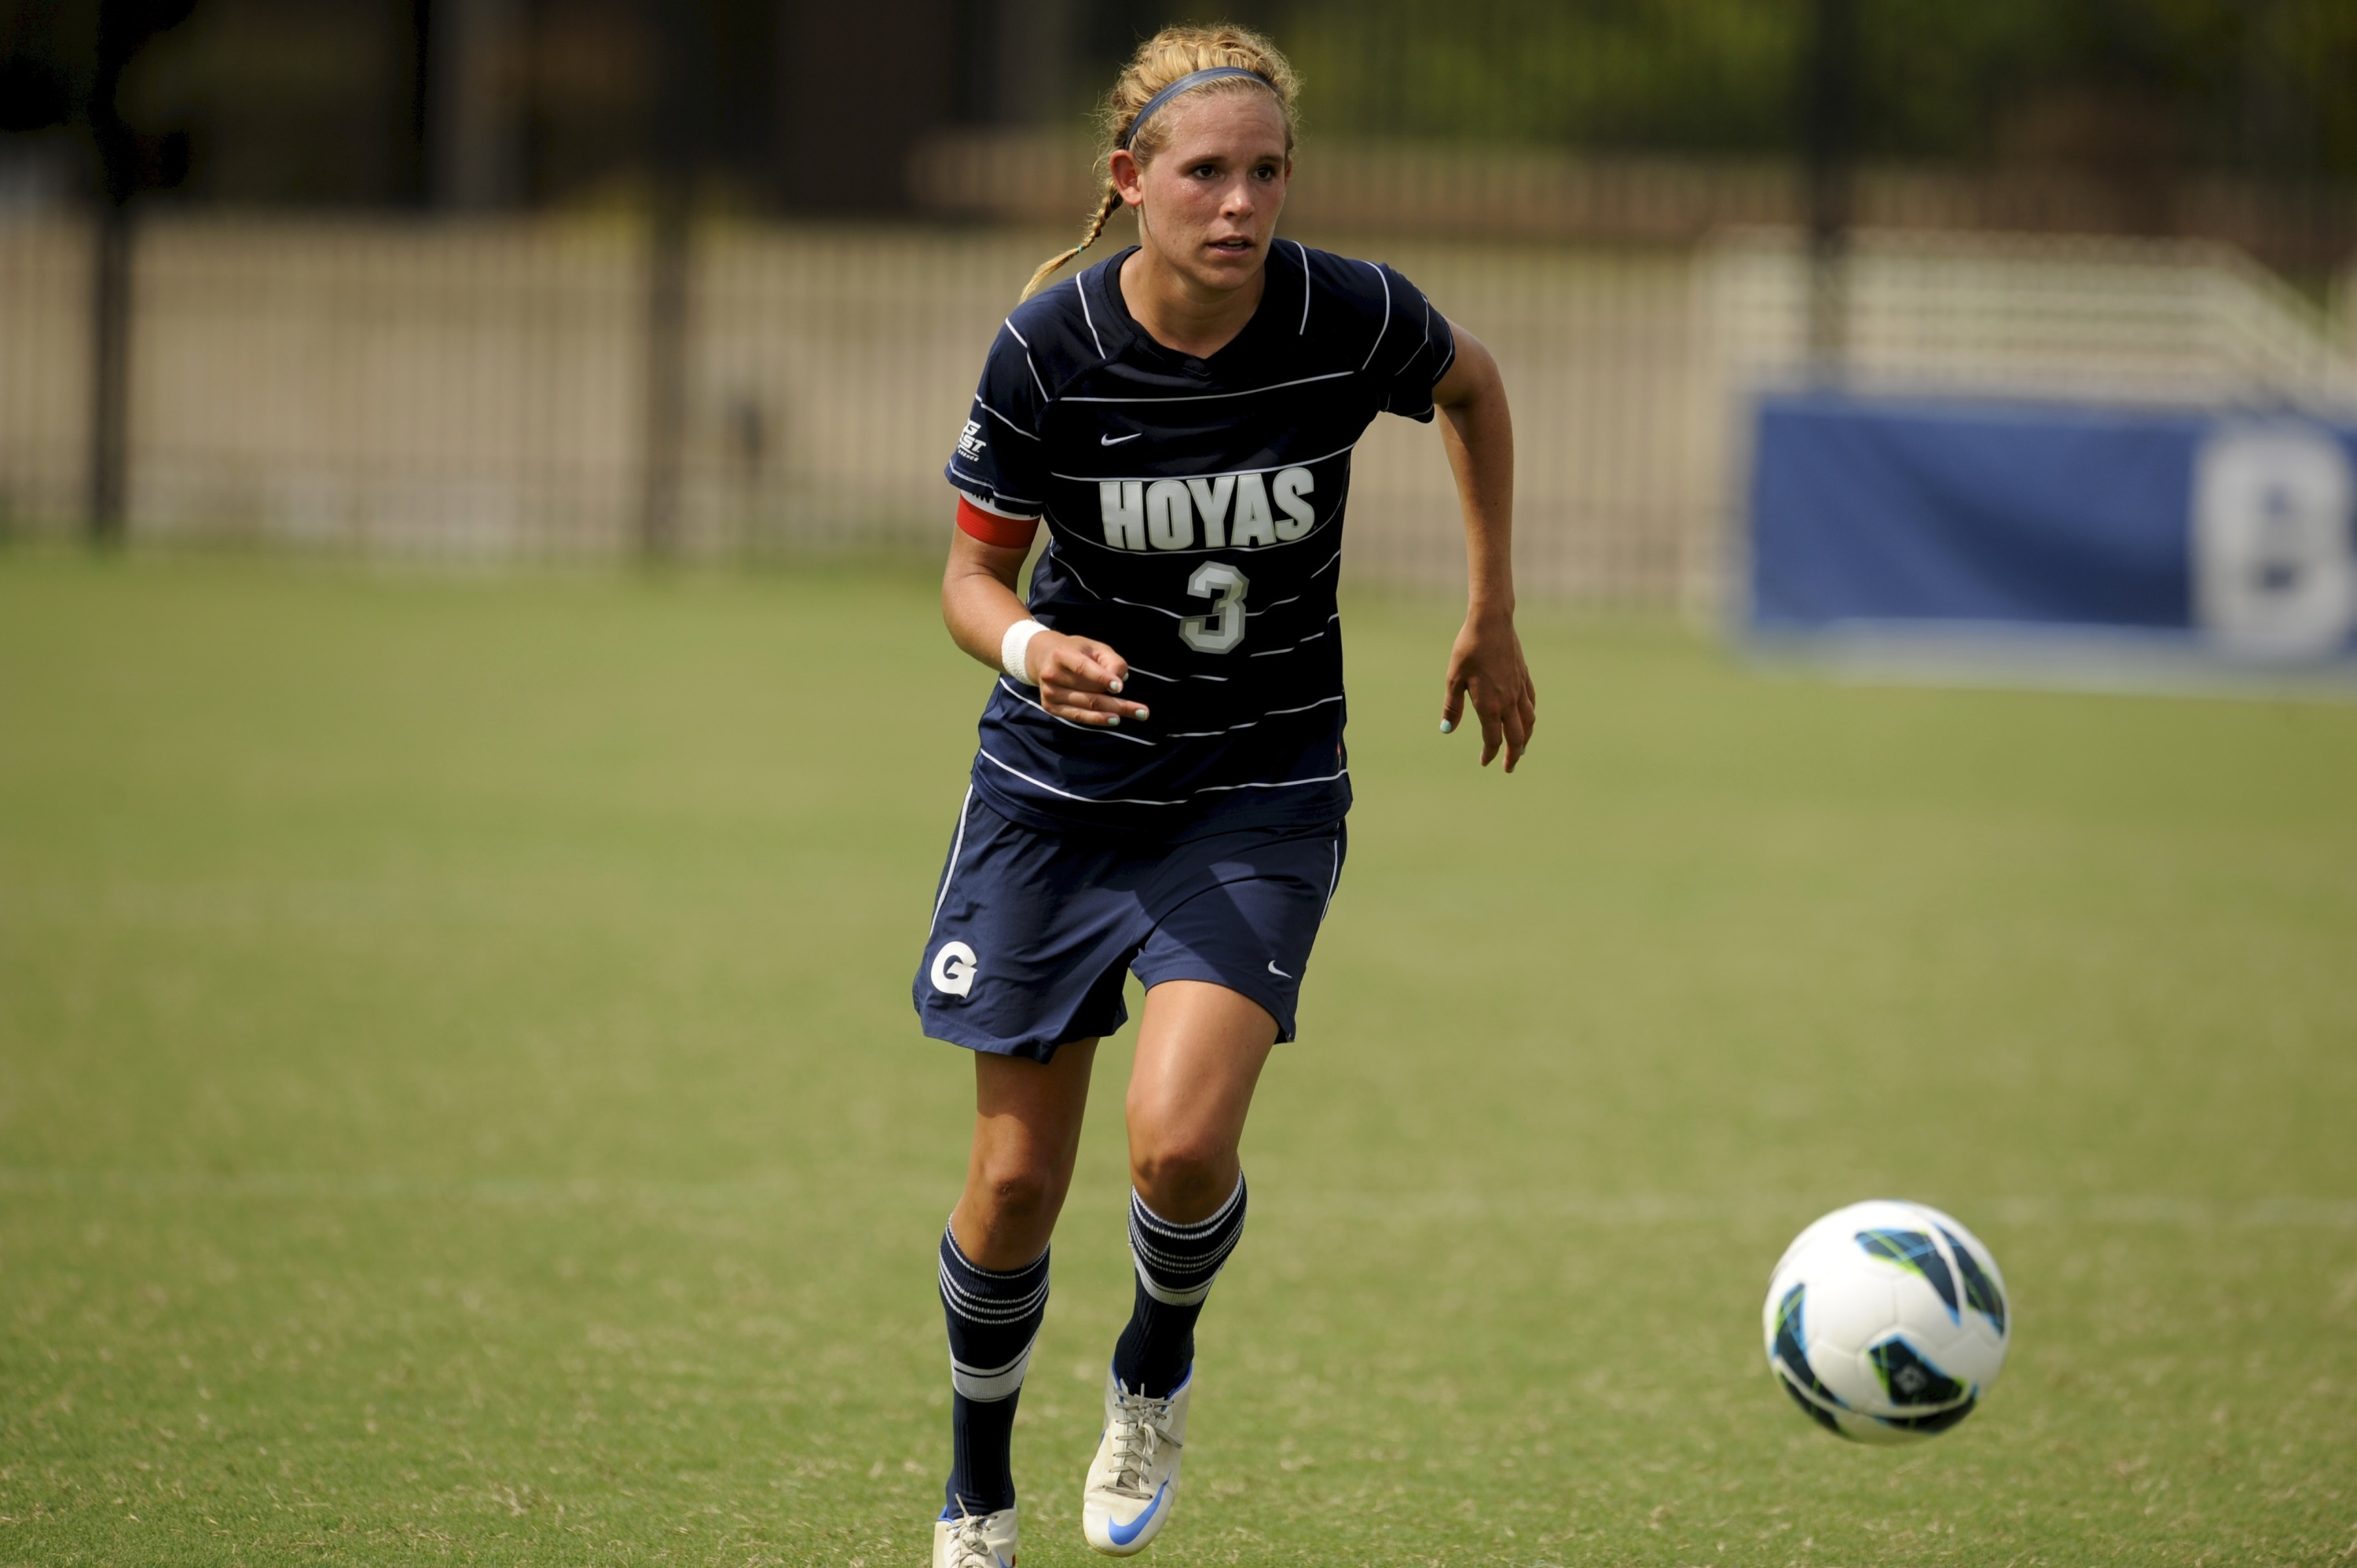 Former Hoya All-American Emily Menges joined the women's soccer team as a volunteer assistant coach.